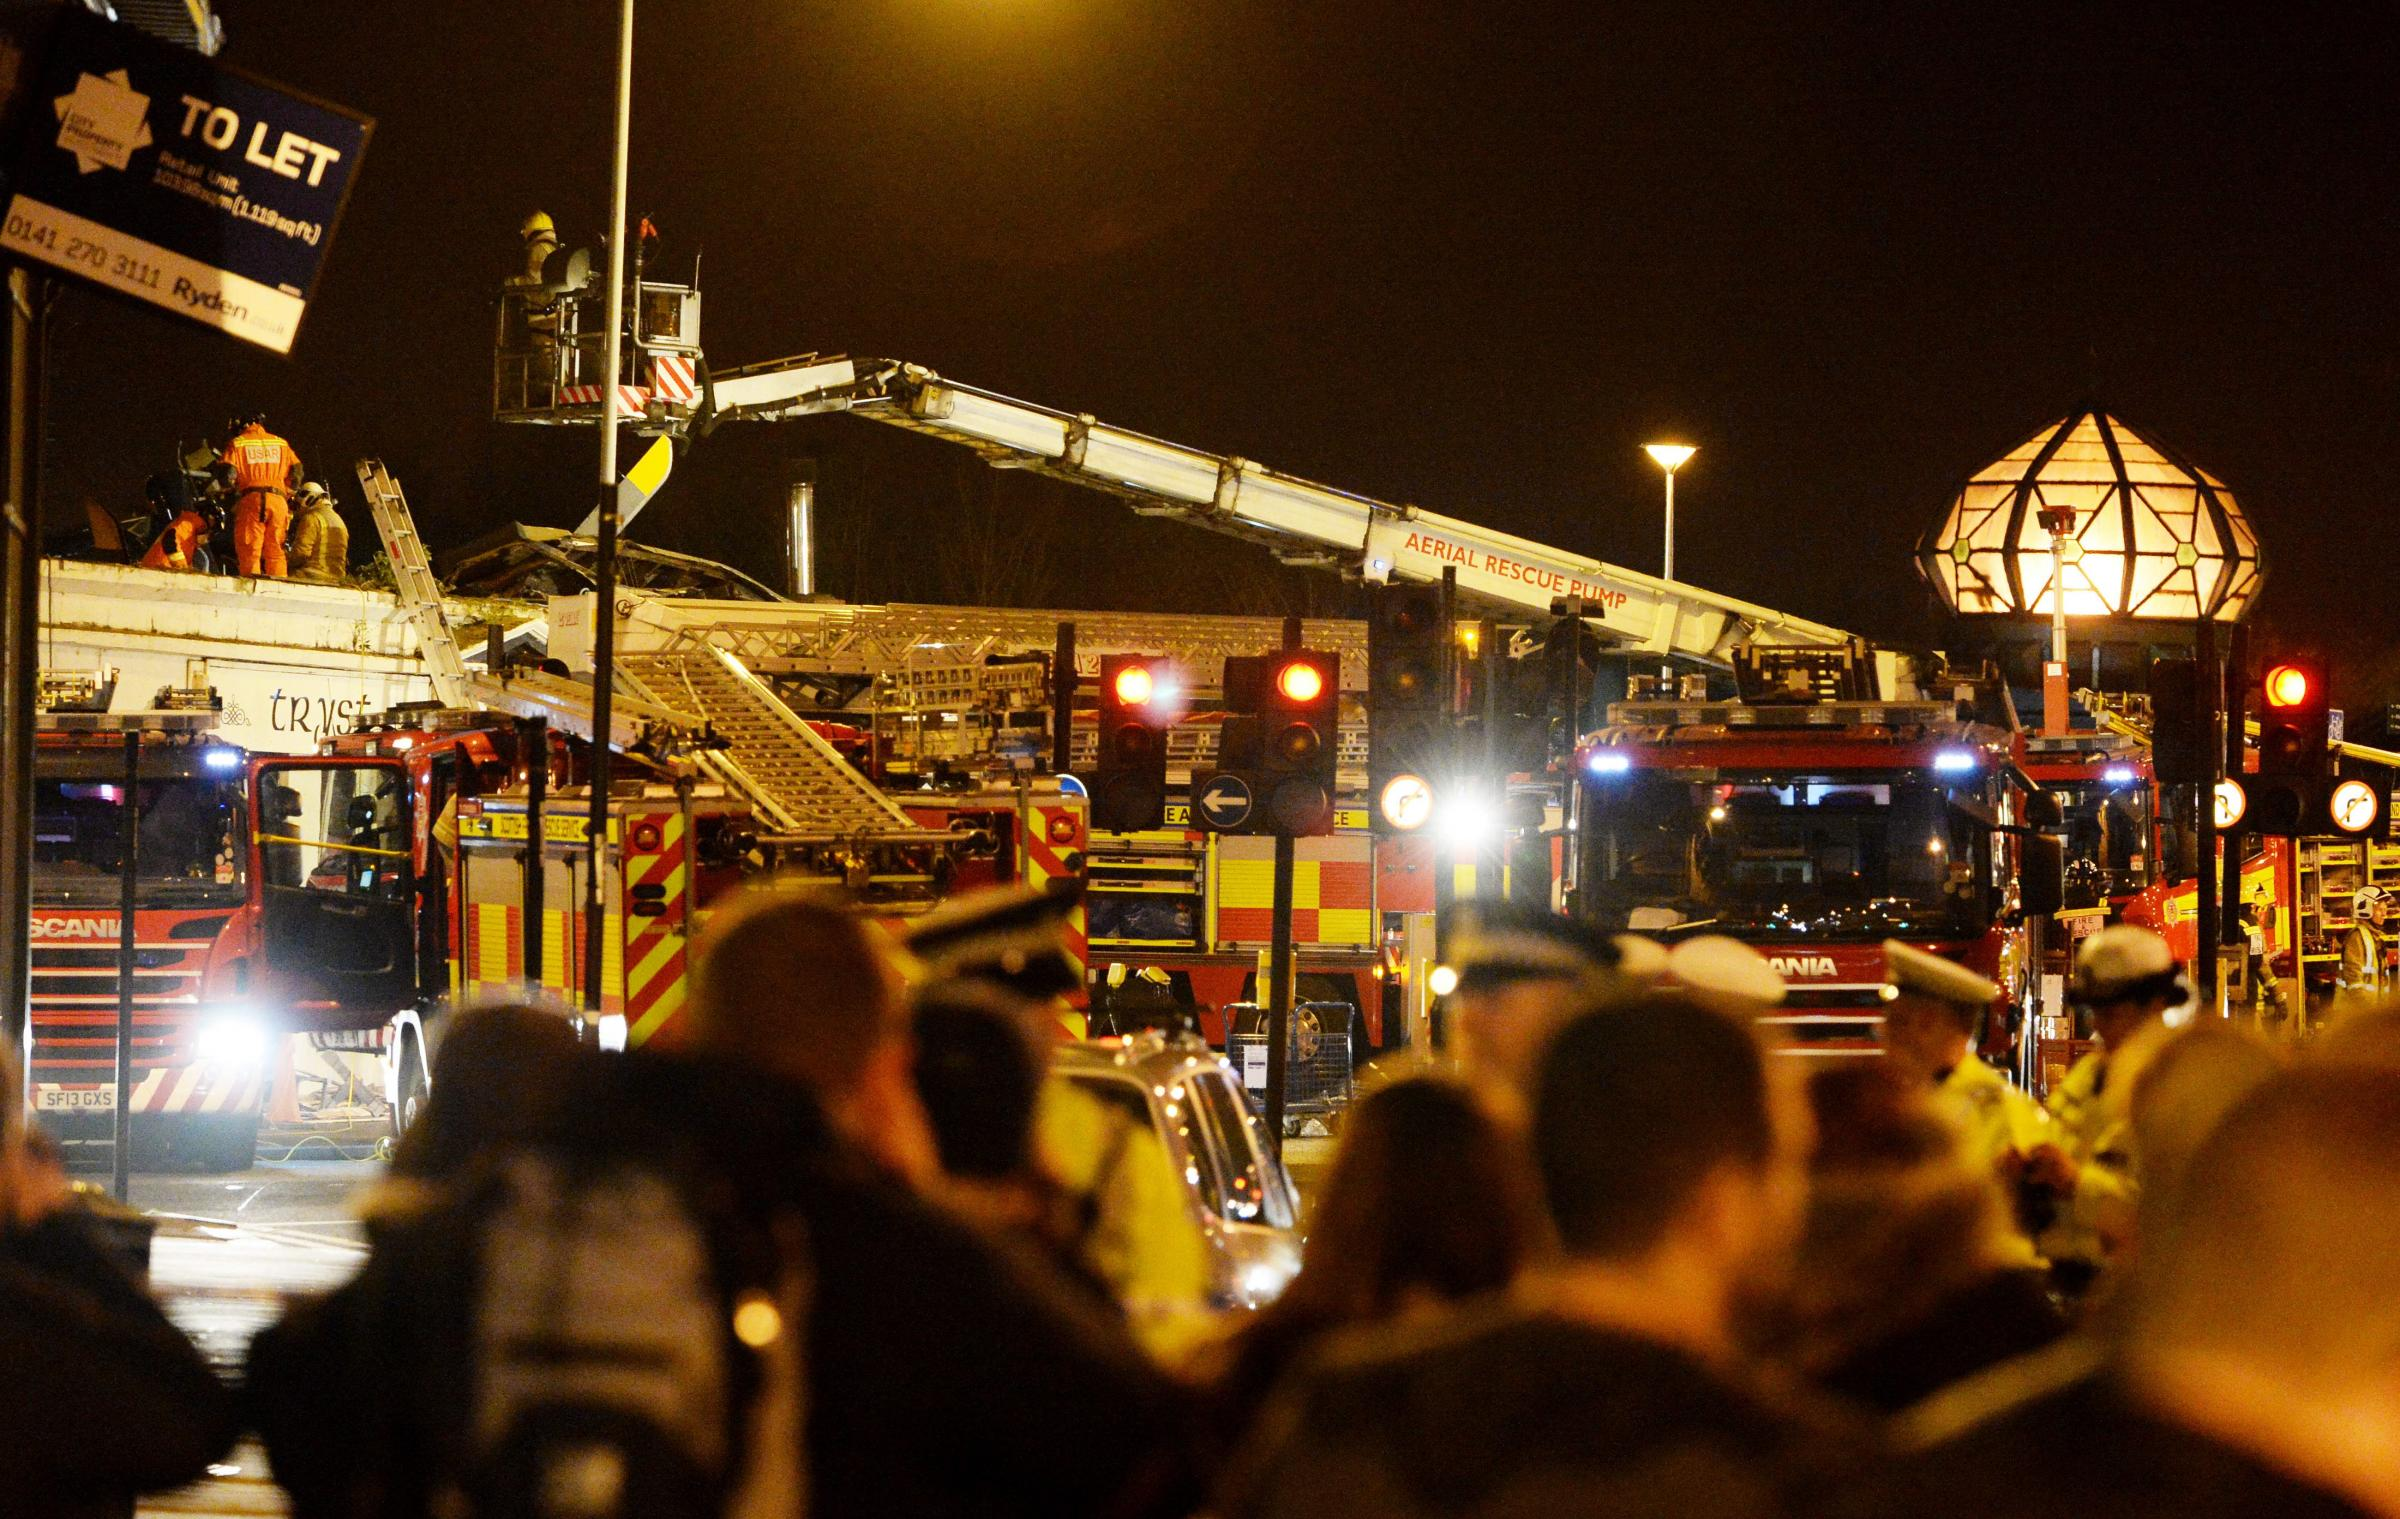 Revealed: Clutha helicopter tragedy Fatal Accident Inquiry date set